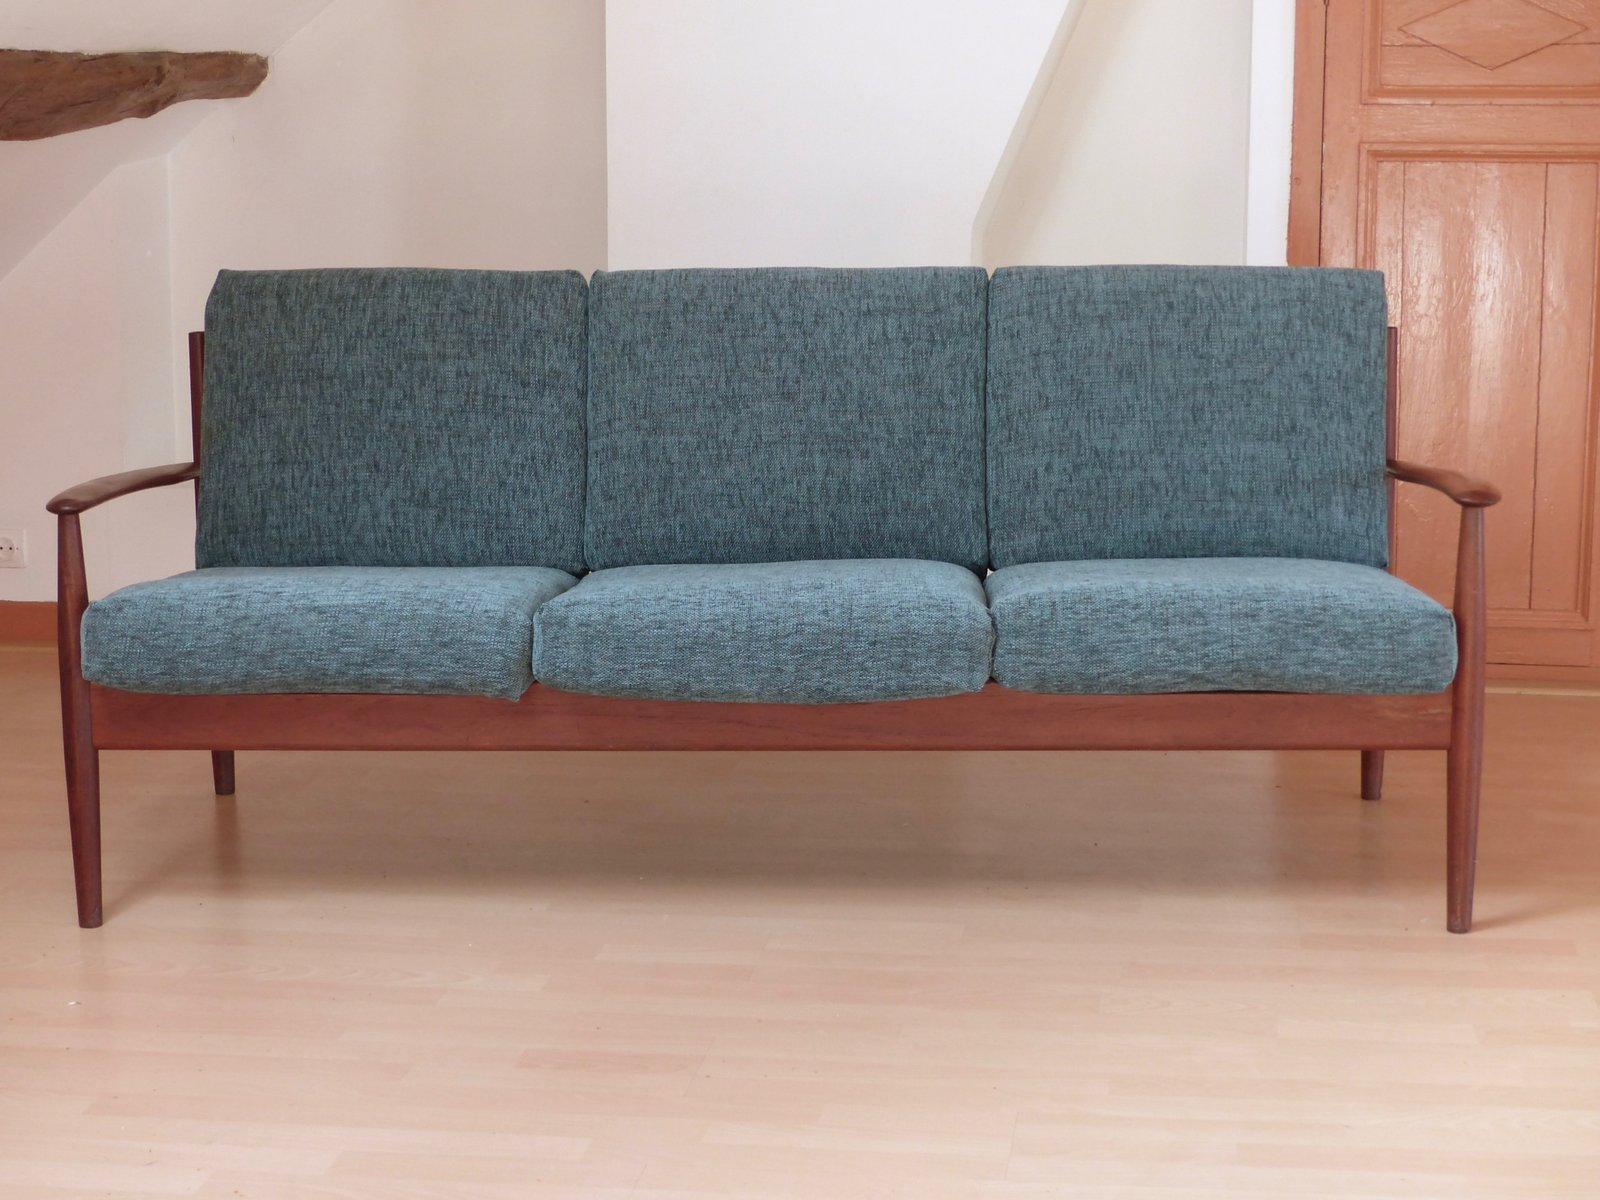 Model 118 Scandinavian Teak Sofa by Grete Jalk for France & S¸n